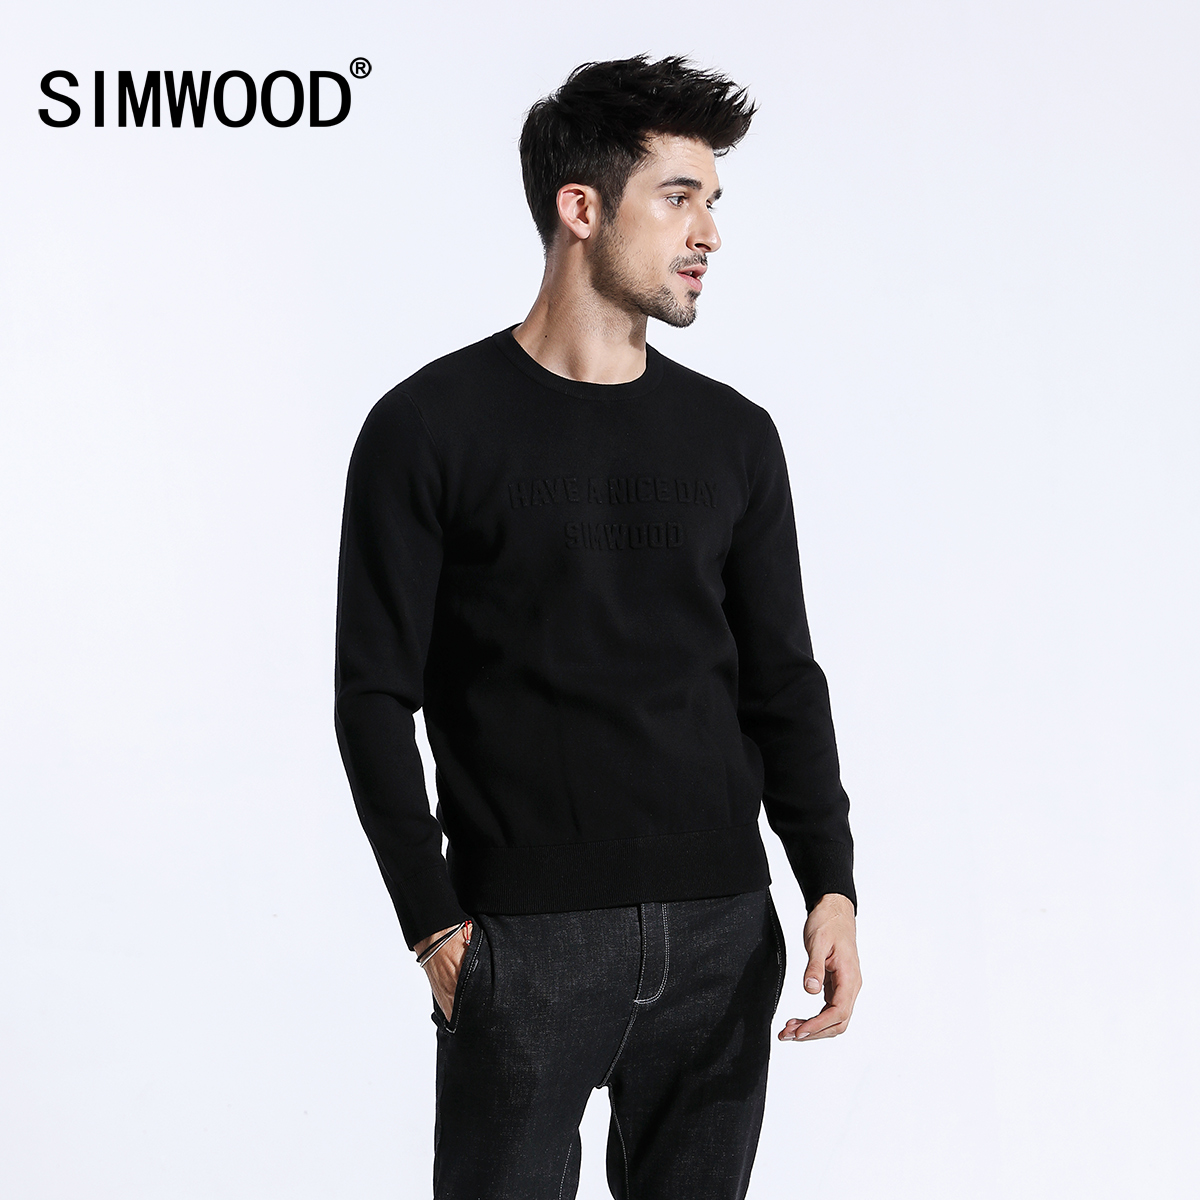 SIMWOOD 2019 Spring Winter 3D Print Letter Sweater Men O-neck Knitted Fashion Pullovers Slim Fit High Quality Clothes 180423